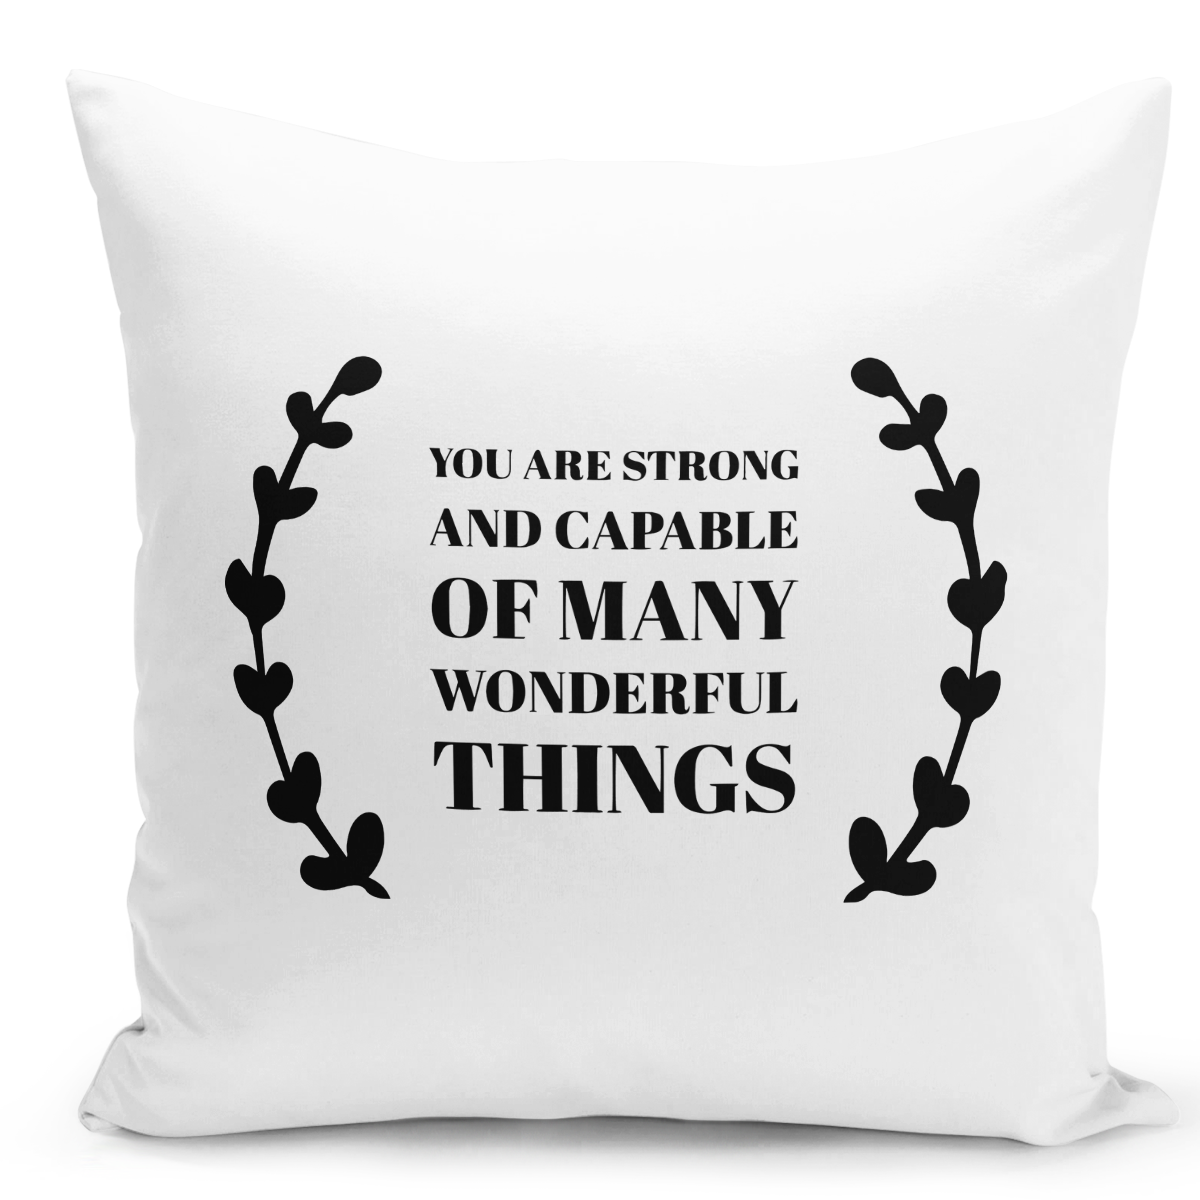 16x16-inch-Throw-Pillow-for-Home-Decor-with-Stuffing-You-Are-Strong-And-Capable-Of-Many-Thing-Motivational-Pillow-